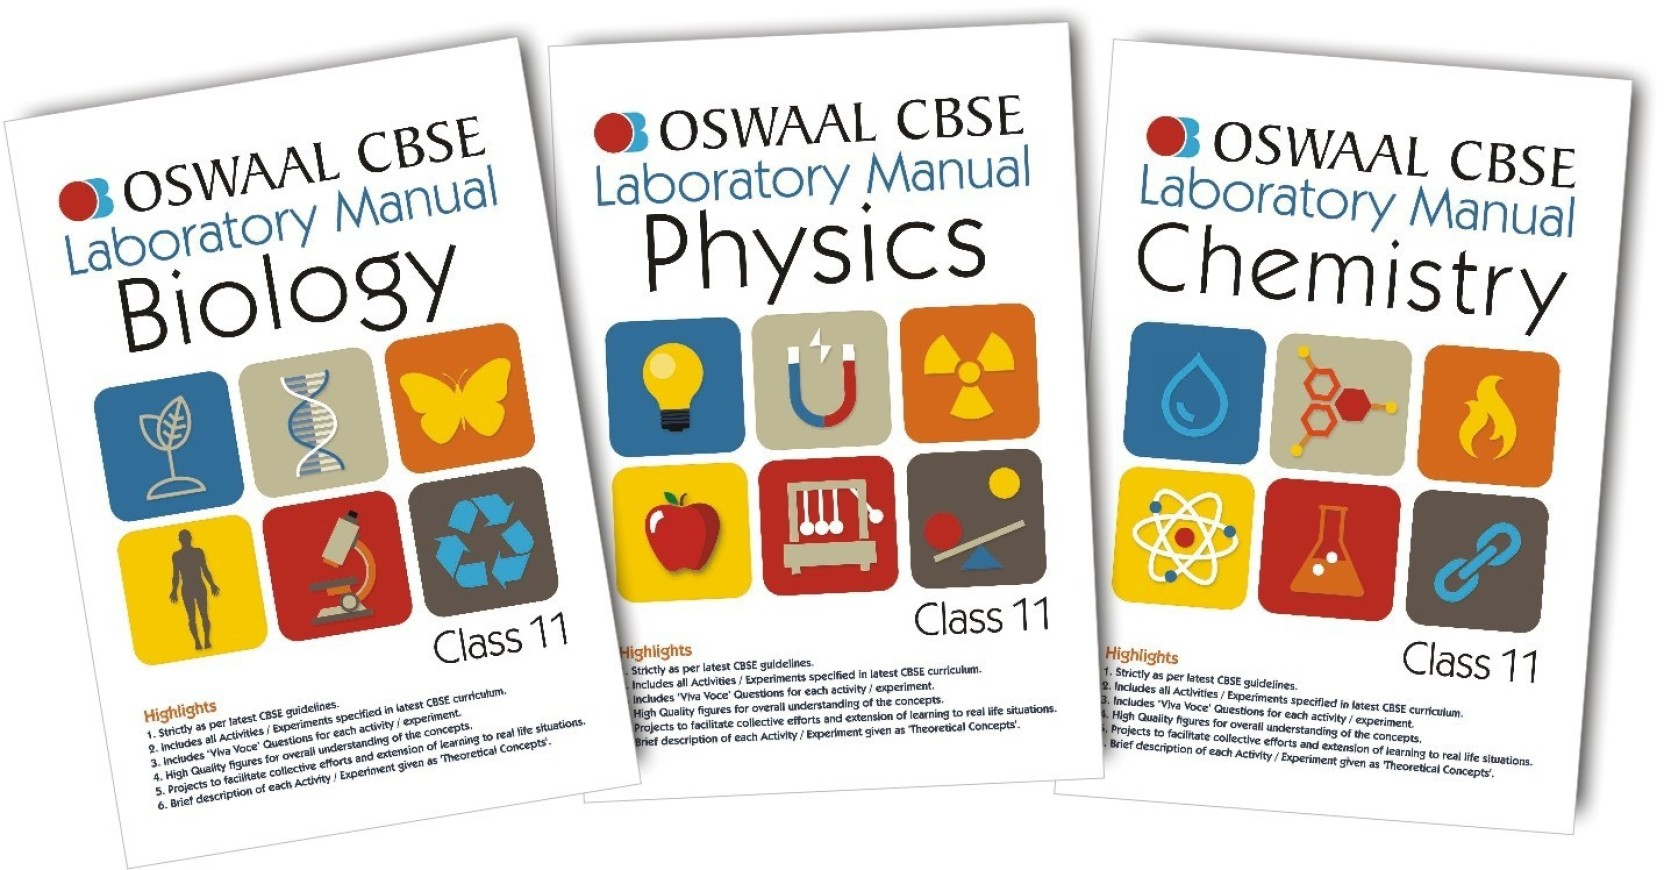 CBSE Laboratory Manual - Biology/Physics/Chemistry for Class 11. ADD TO CART